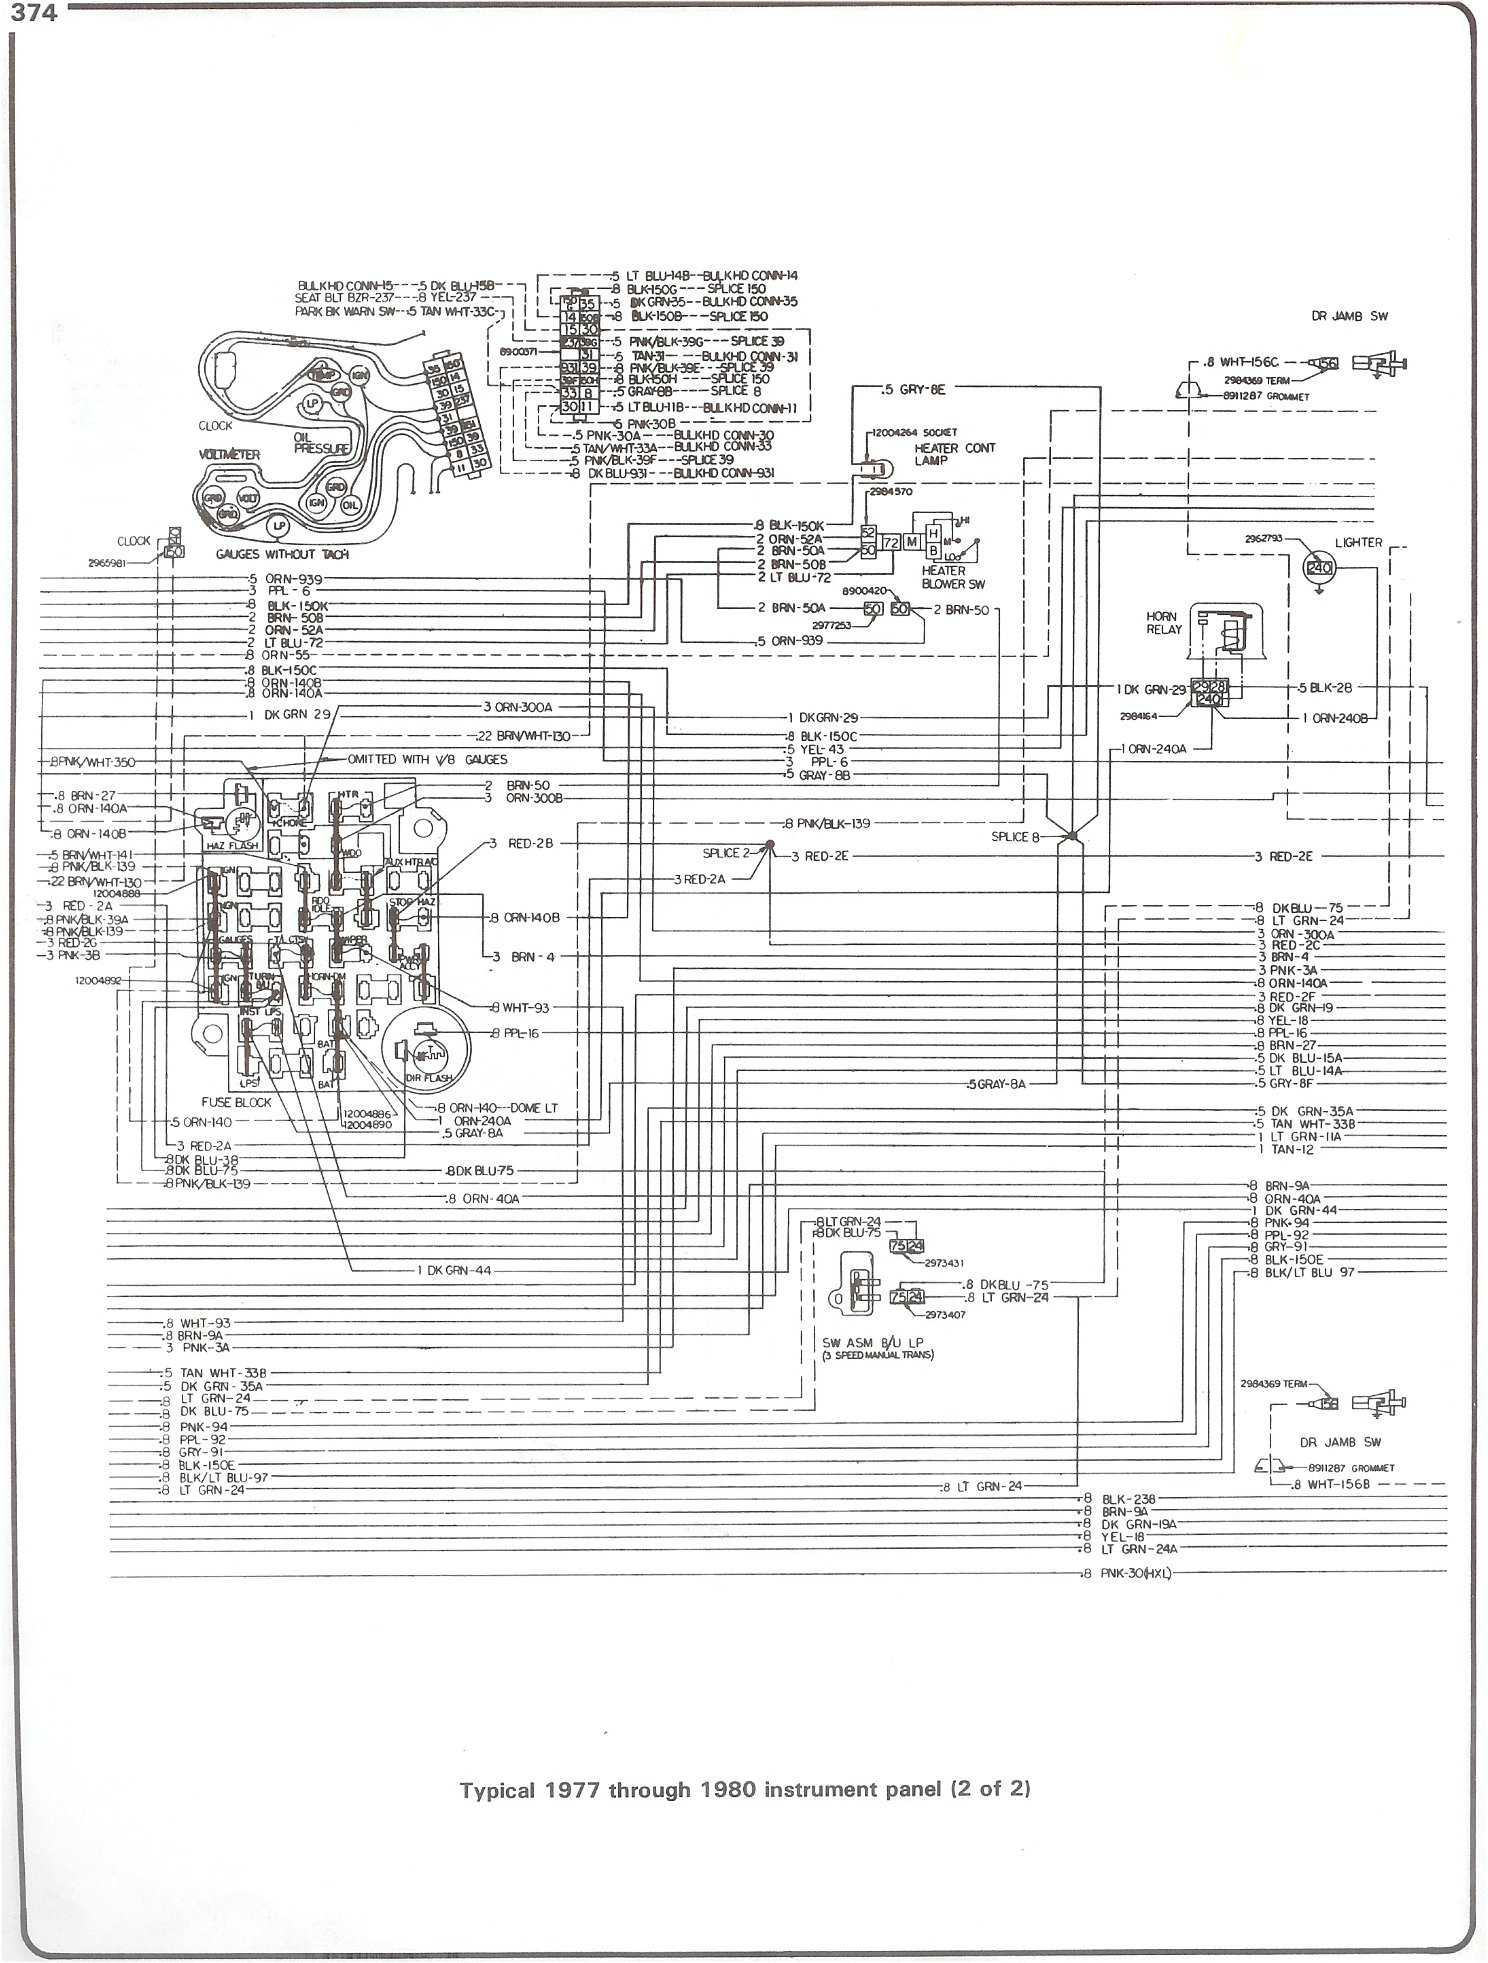 1974 chevy k5 blazer wiring diagram today diagram database 85 K5 Blazer